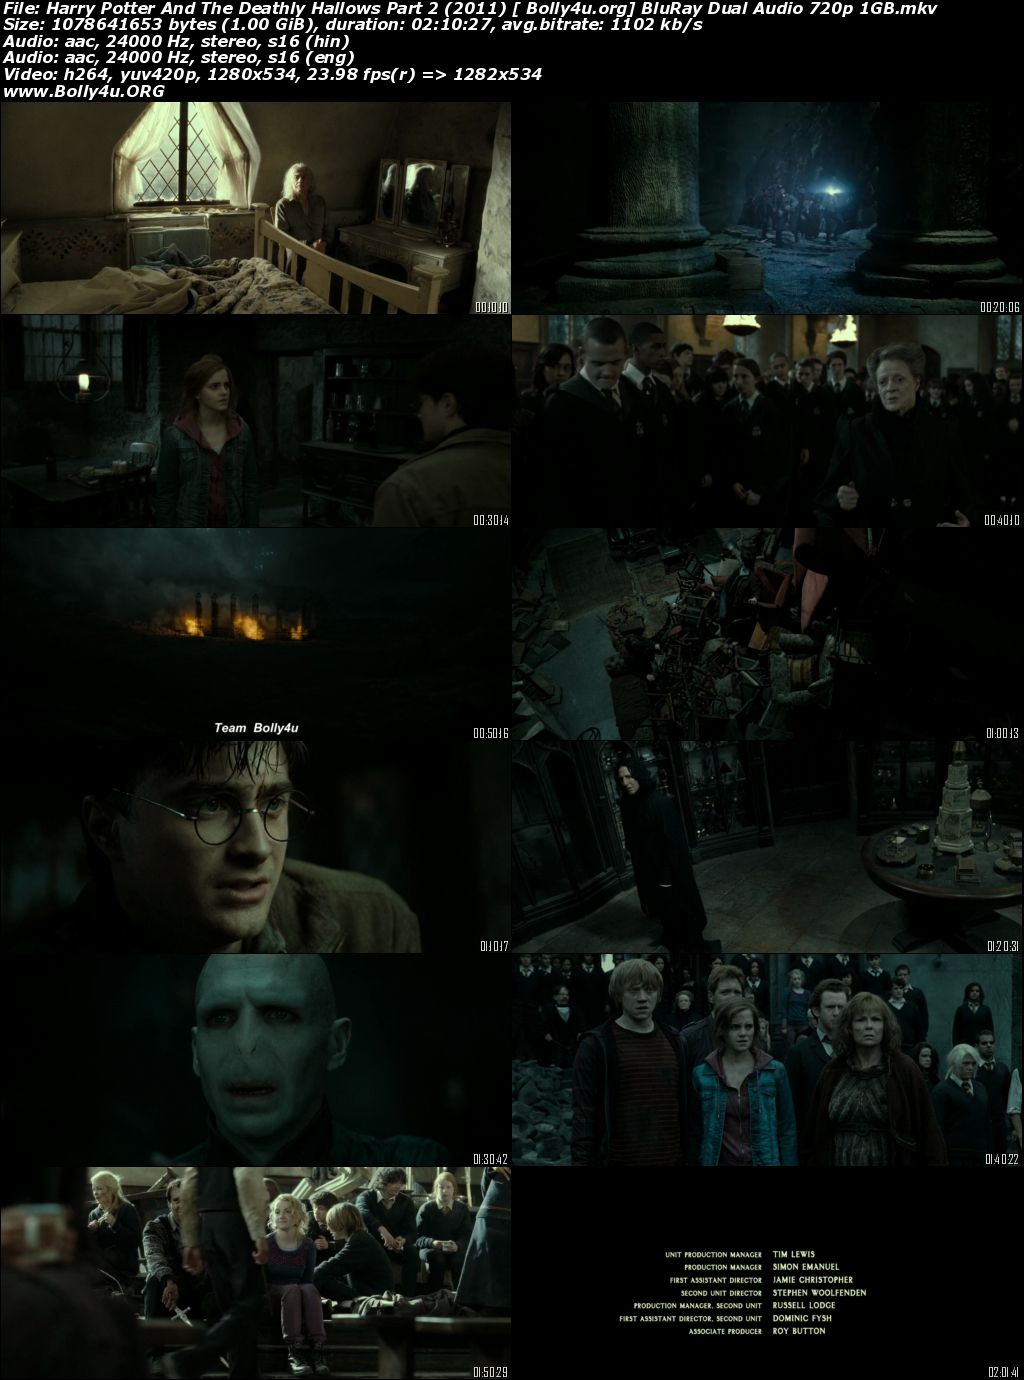 Harry Potter And The Deathly Hallows Part 2 2011 BRRip 400Mb Hindi Dual Audio 480p Download